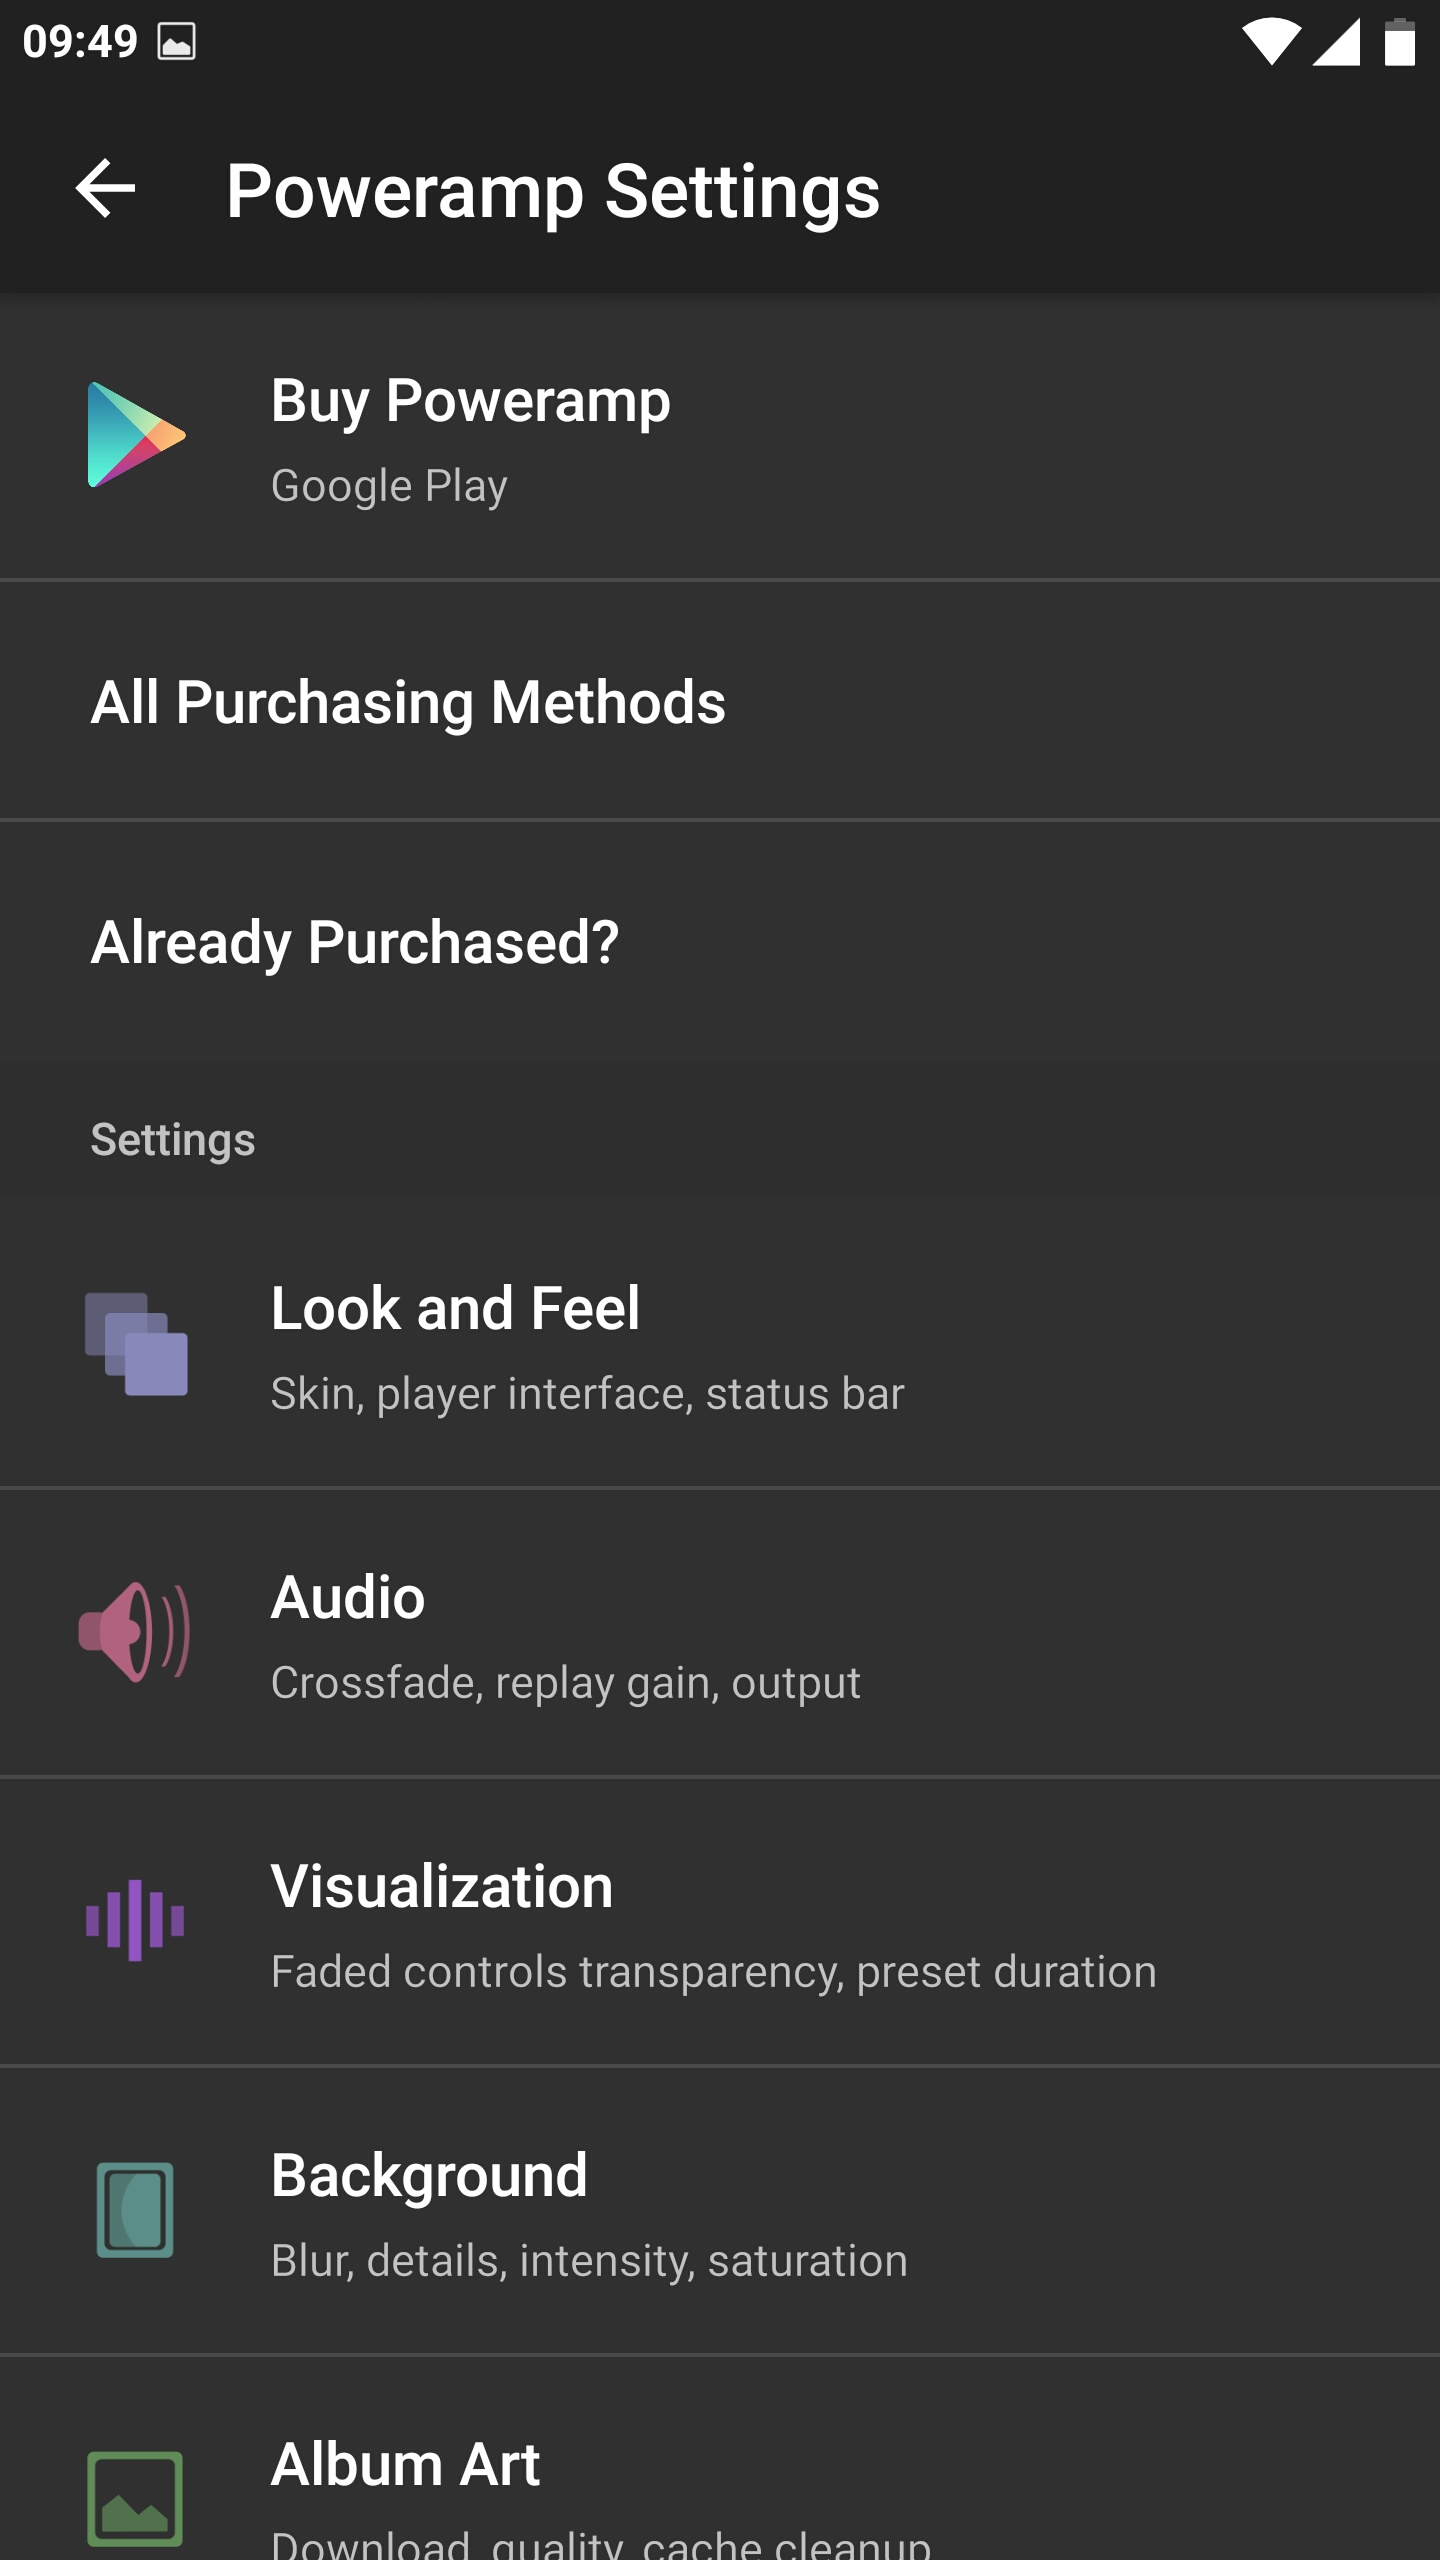 CFT-App Review] Poweramp returns with new UI and features